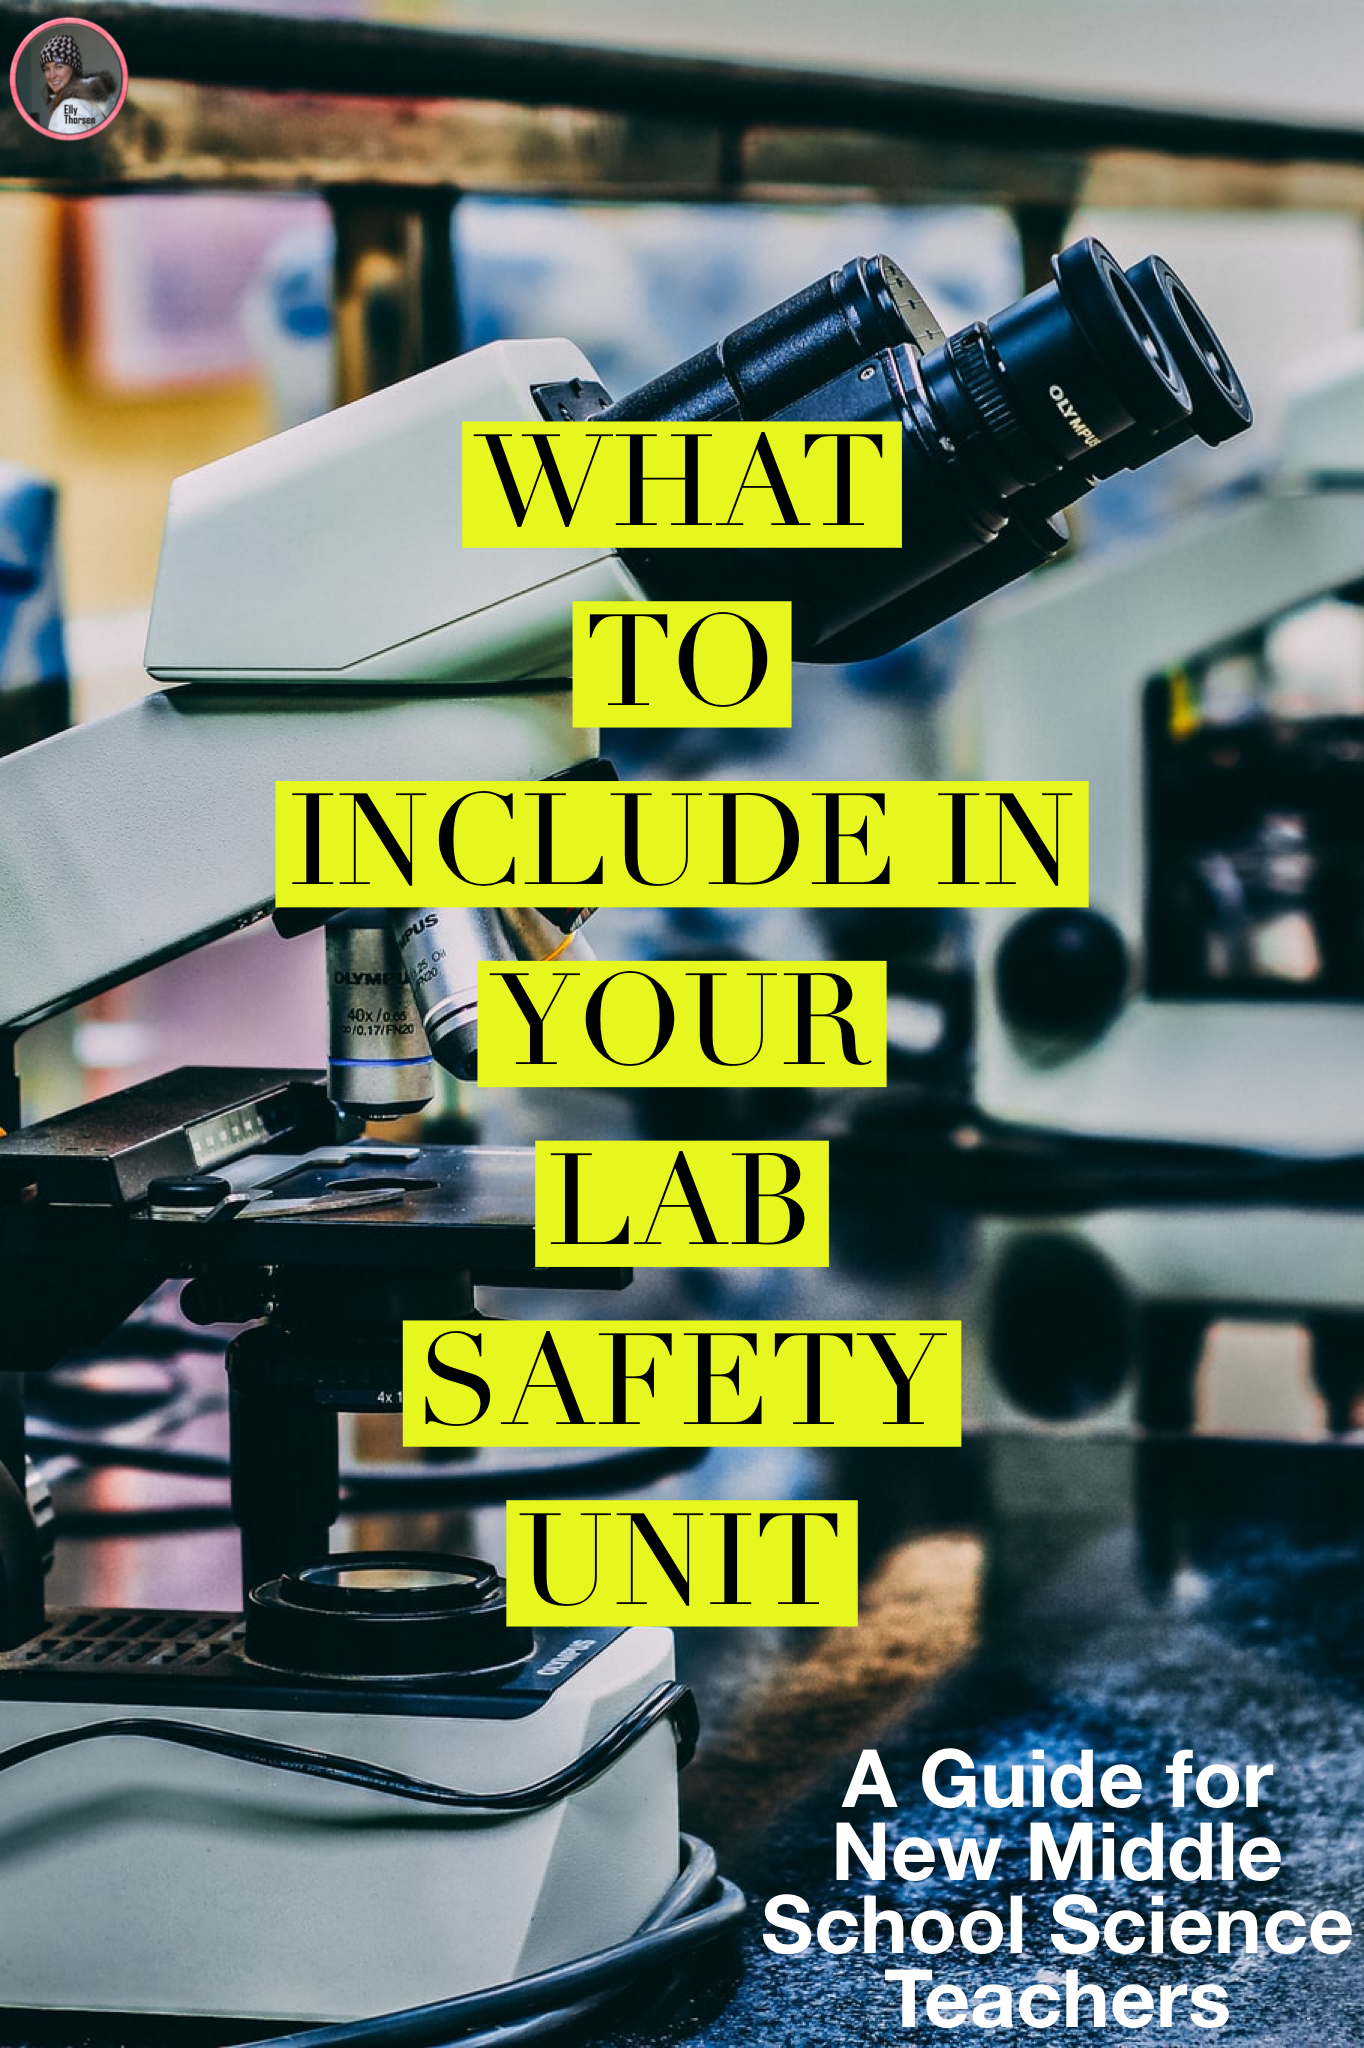 How To Teach Laboratory Safety To Middle School Science